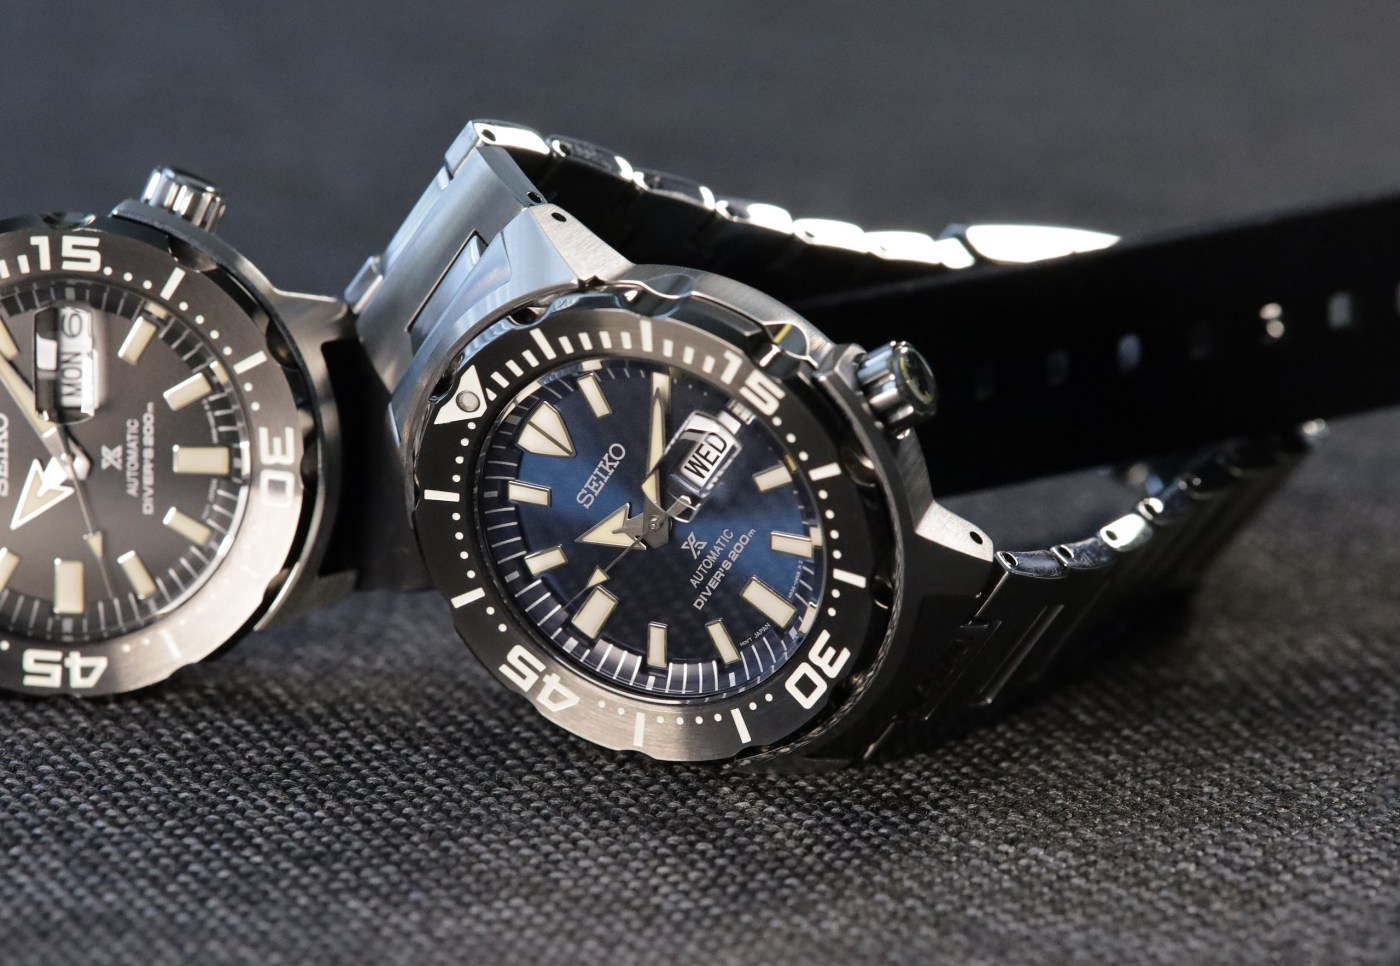 Seiko Prospex Ref SRPD25 Monster Automatic Diver next to SRPD27